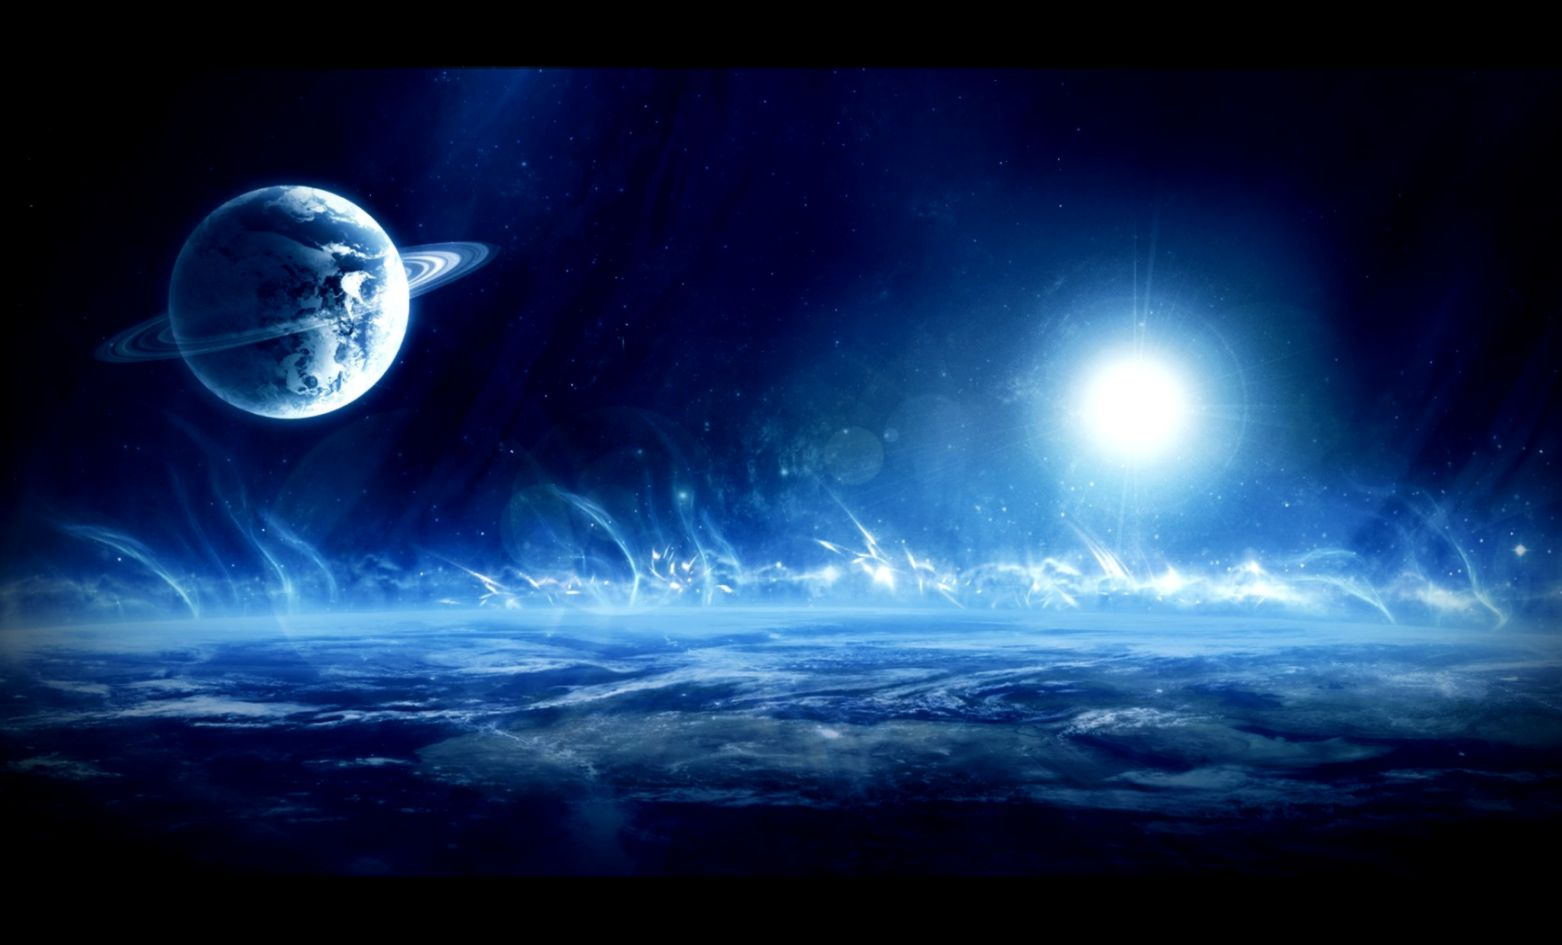 View Original Size Download Outer Space Planets Artwork Wallpaper Wallpapers Printed